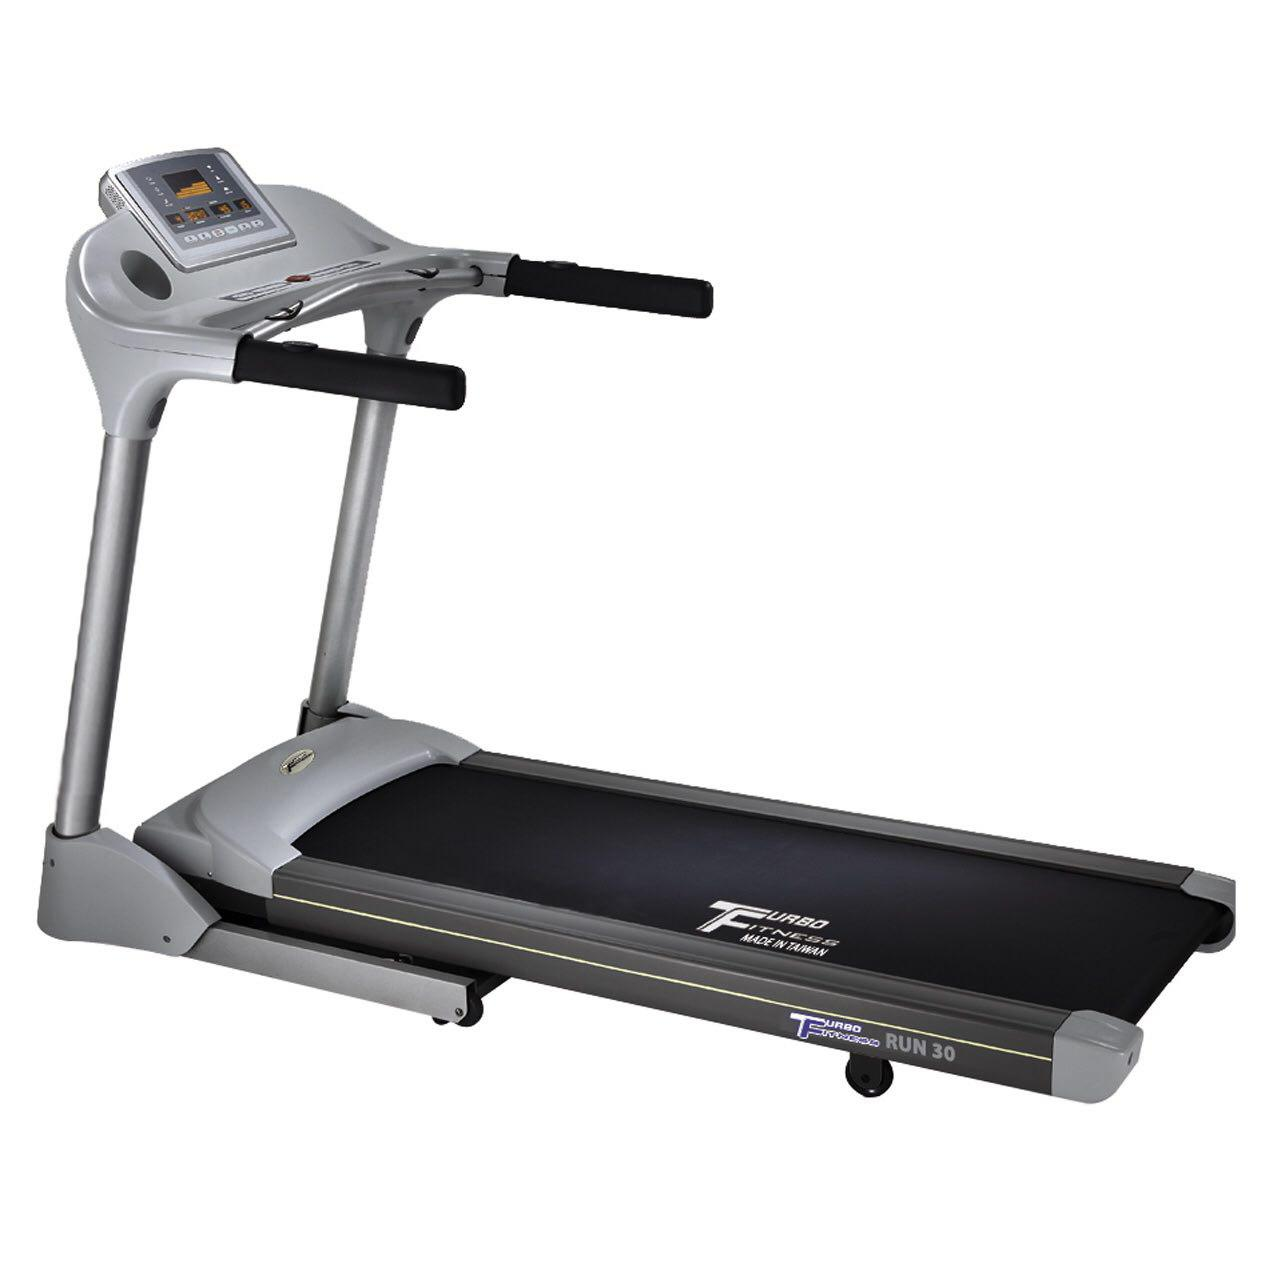 Turbo Fitness Run 30 Treadmills